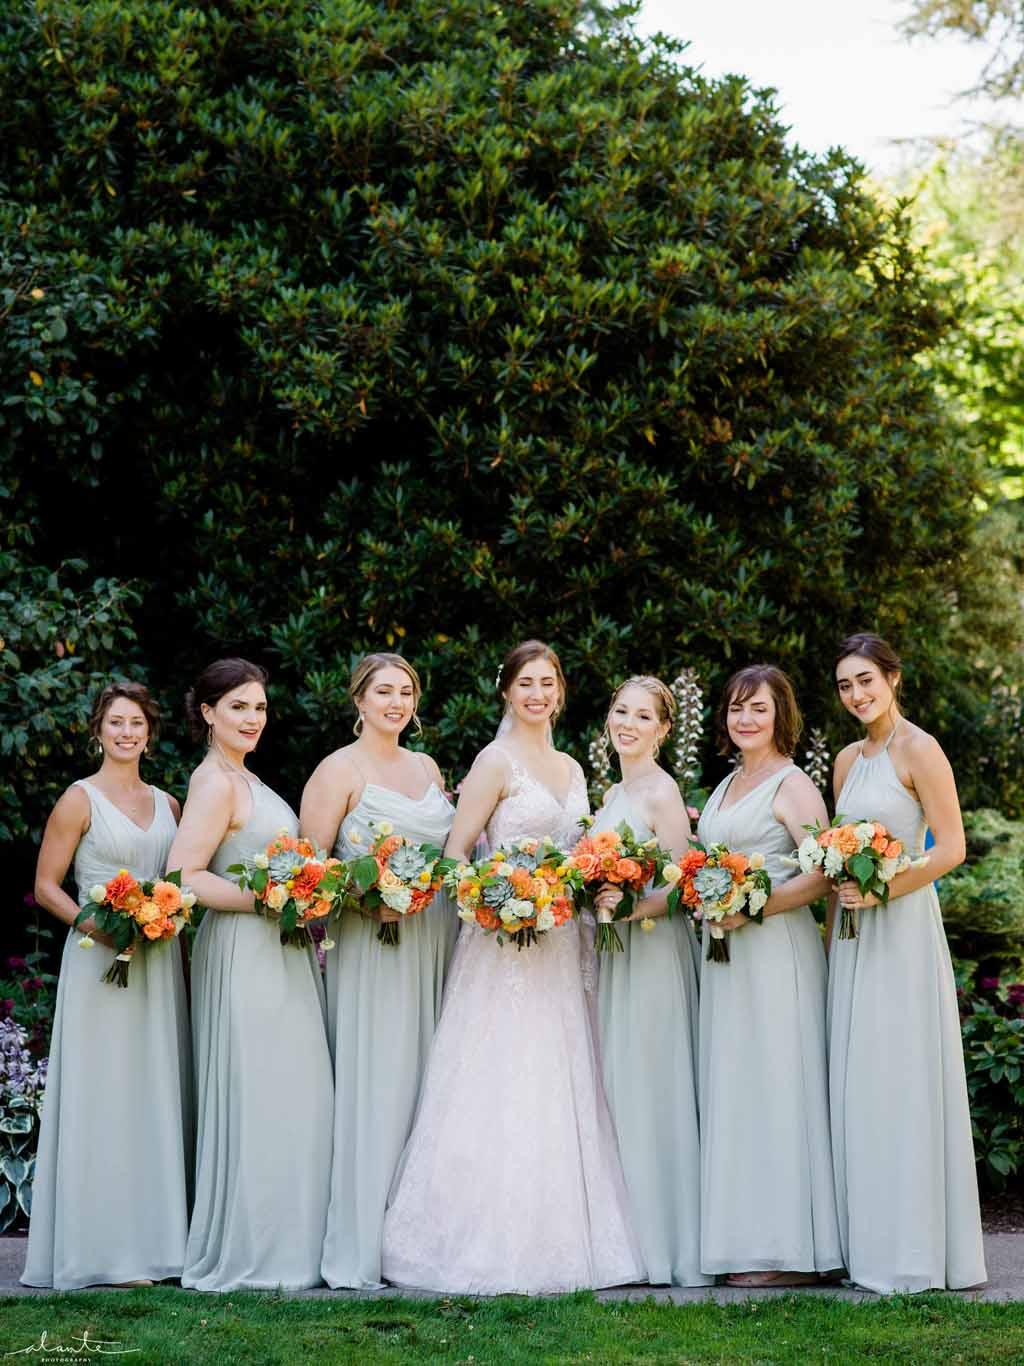 Bridal party in mint dresses for an orange summer wedding at Chihuly Gardens Seattle.